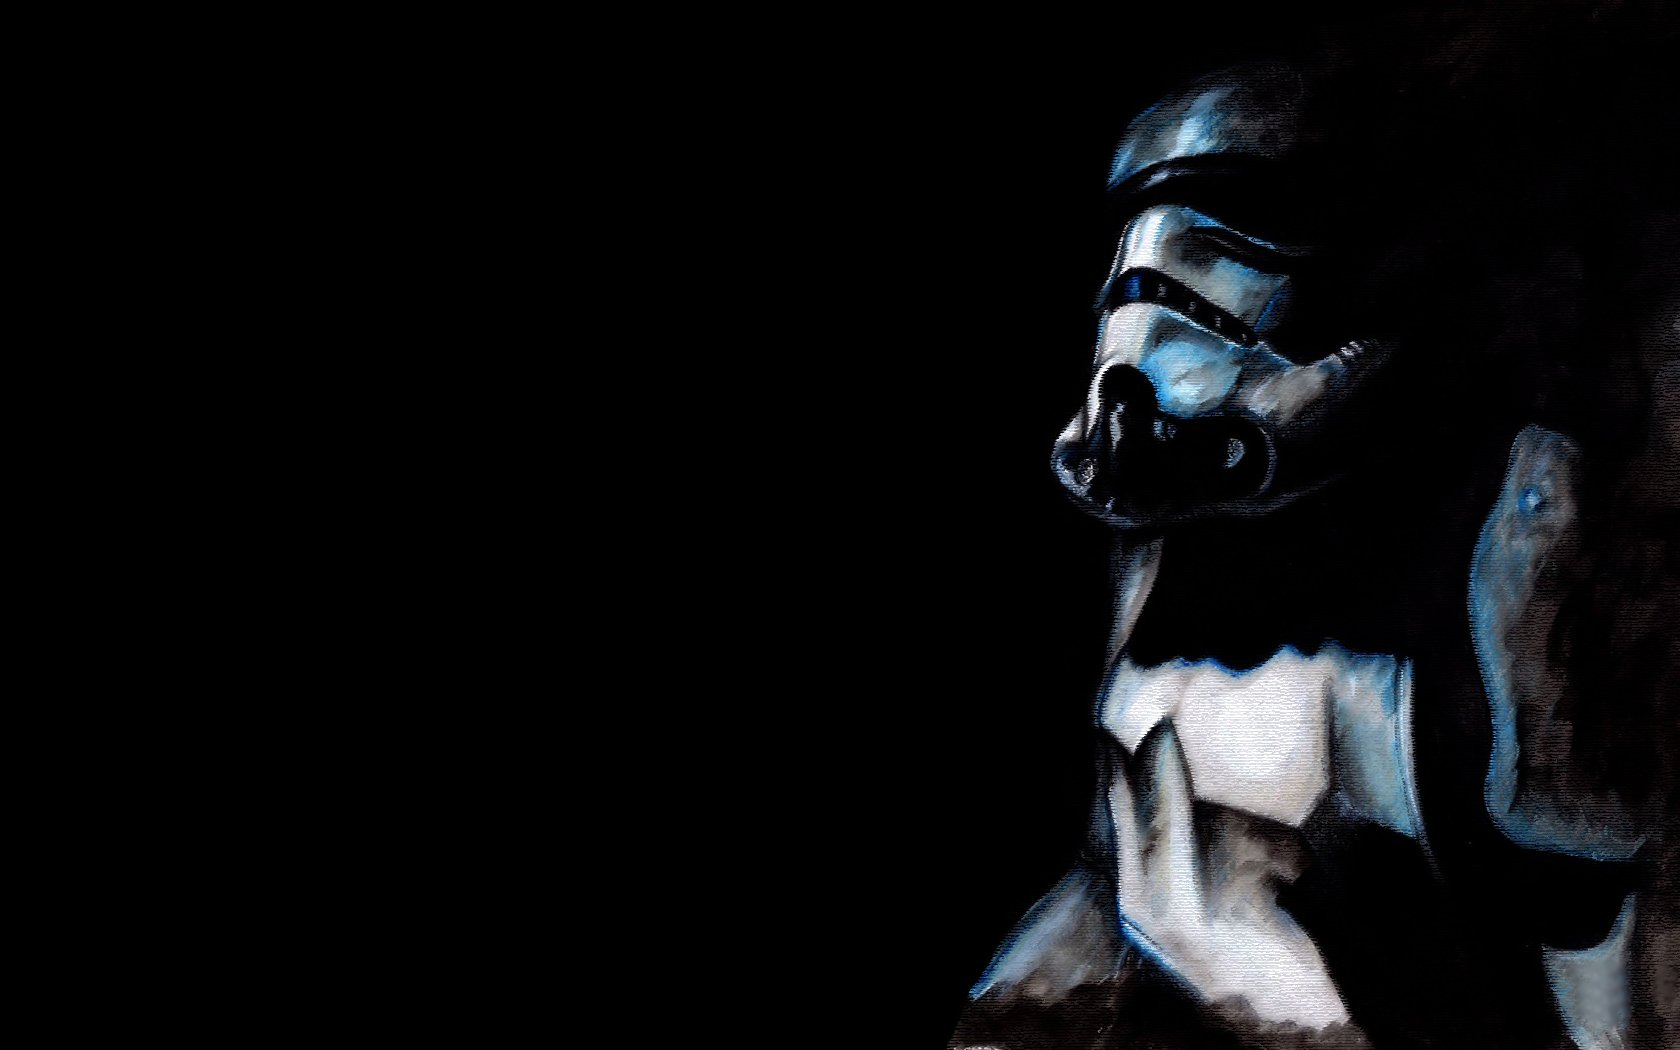 Star Wars Stormtrooper HD Wallpaper